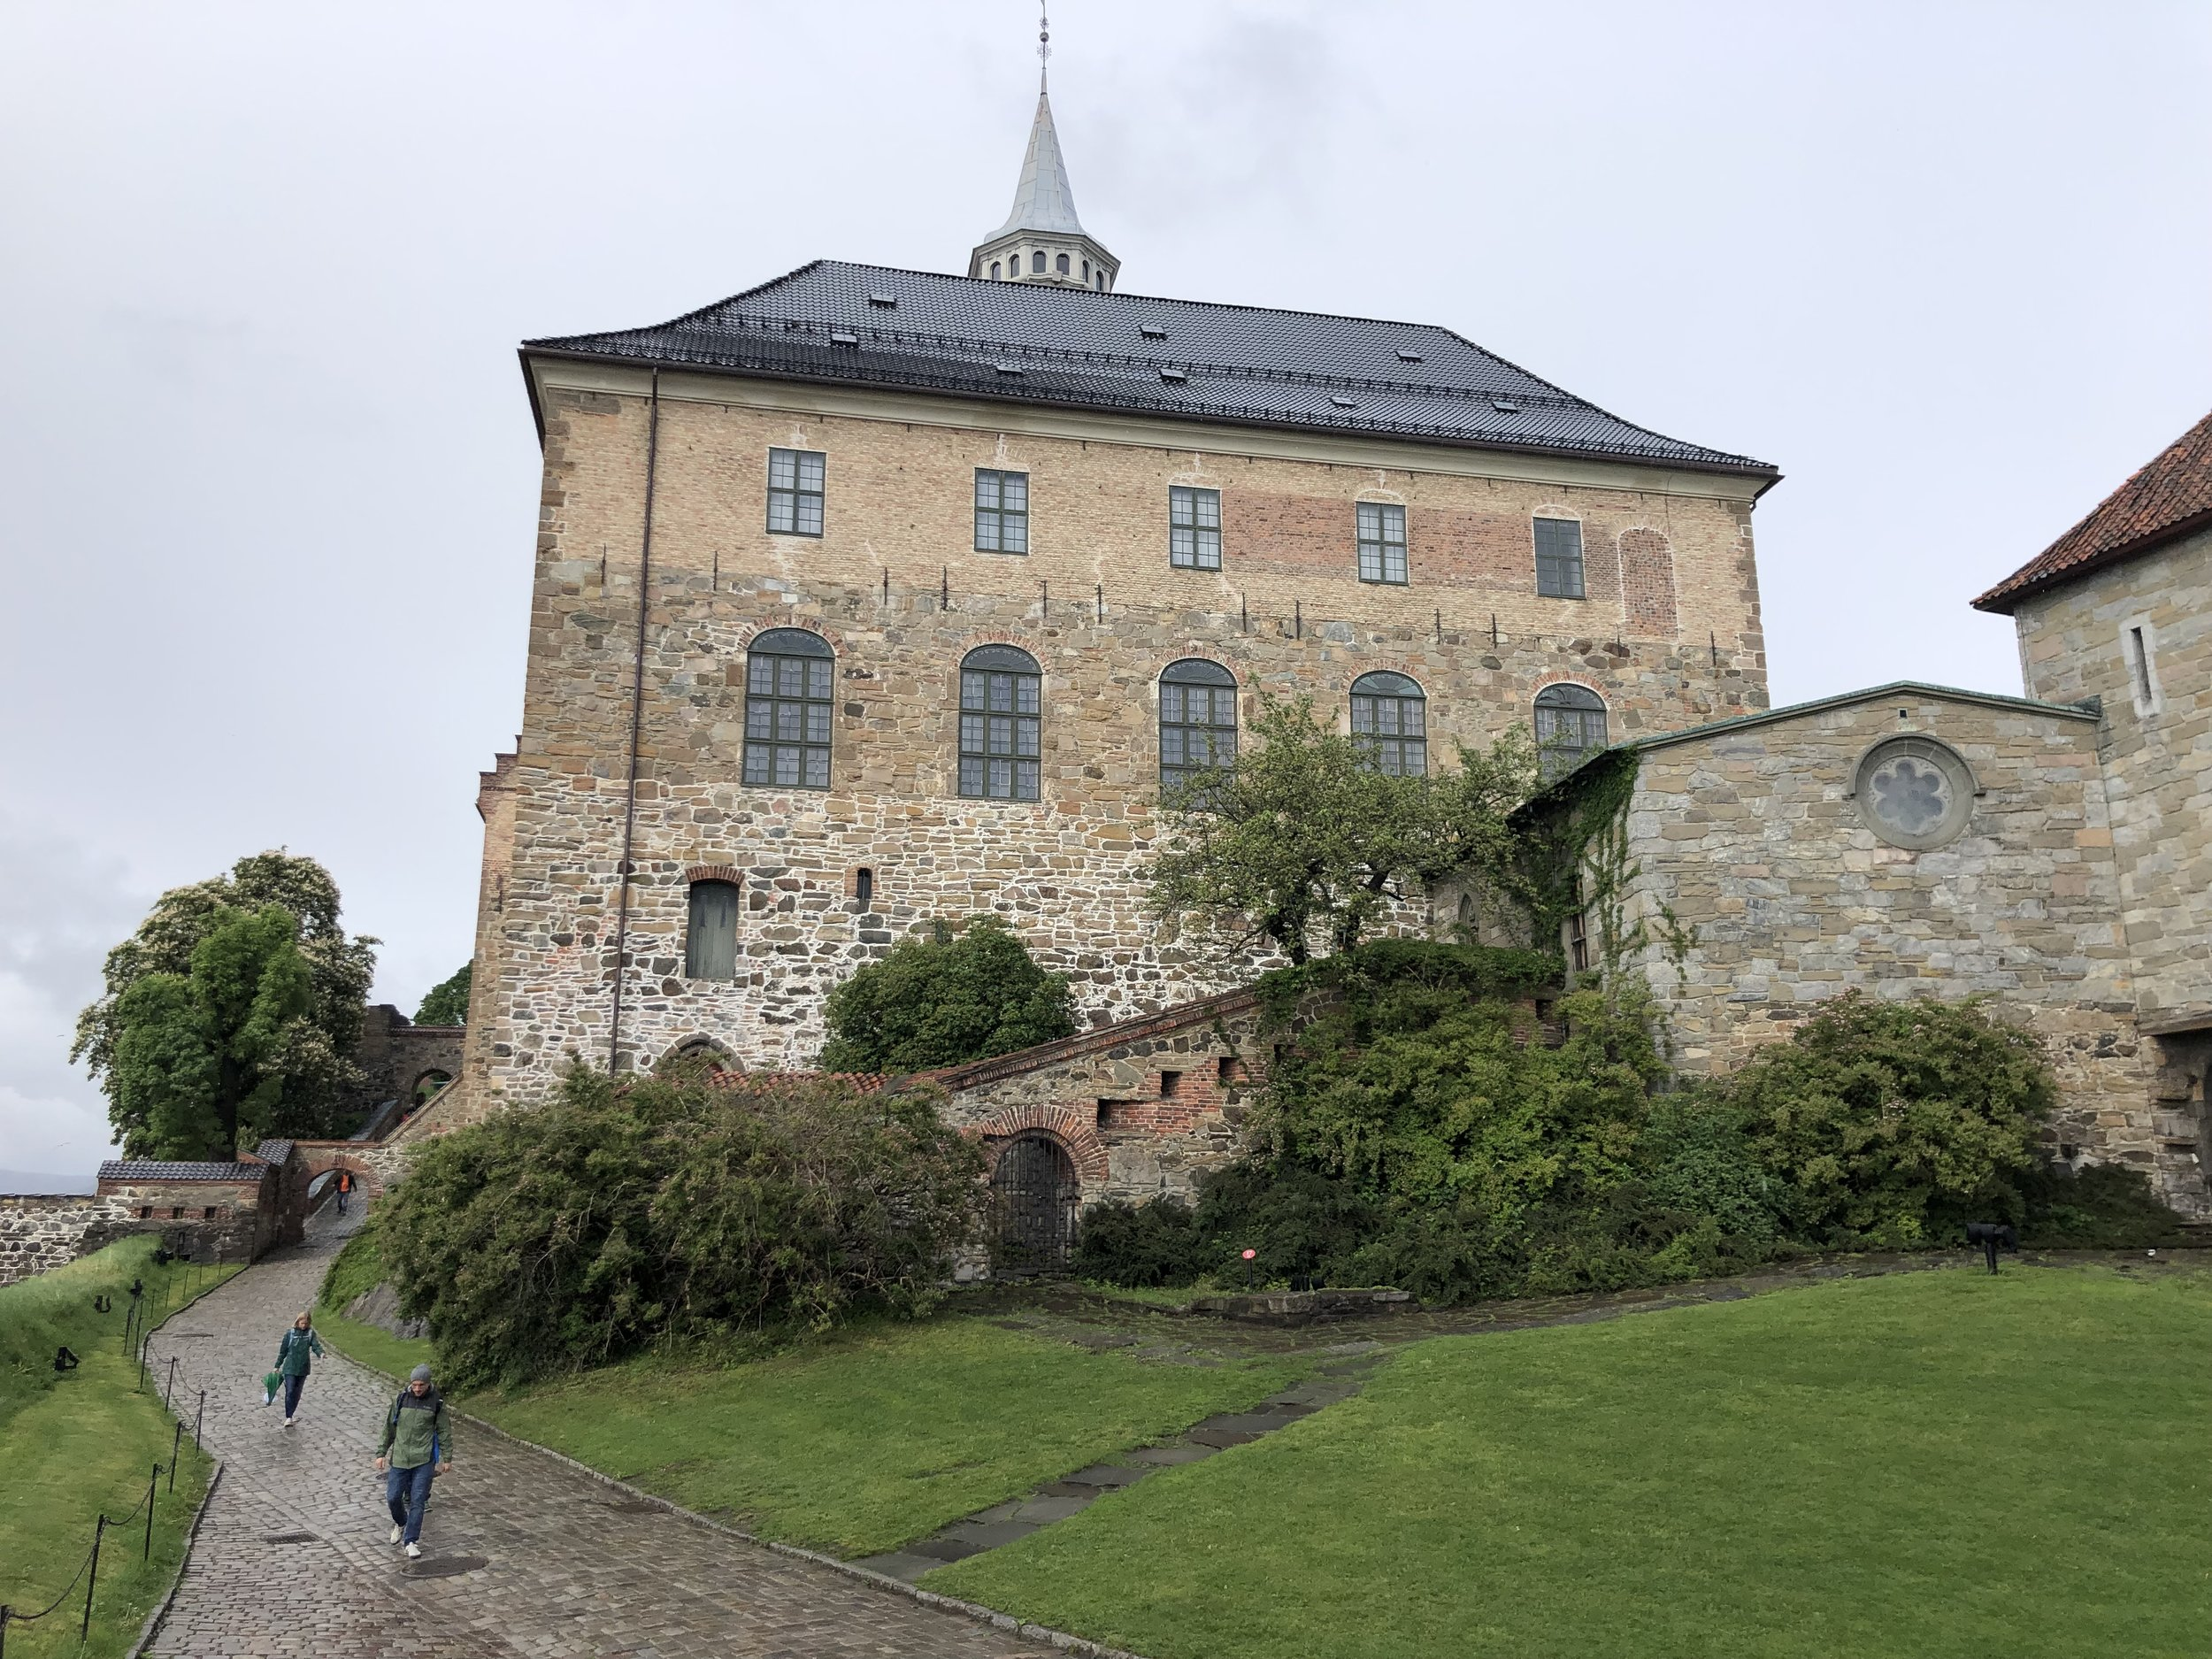 An old fortress that overlooks the Oslo harbor.